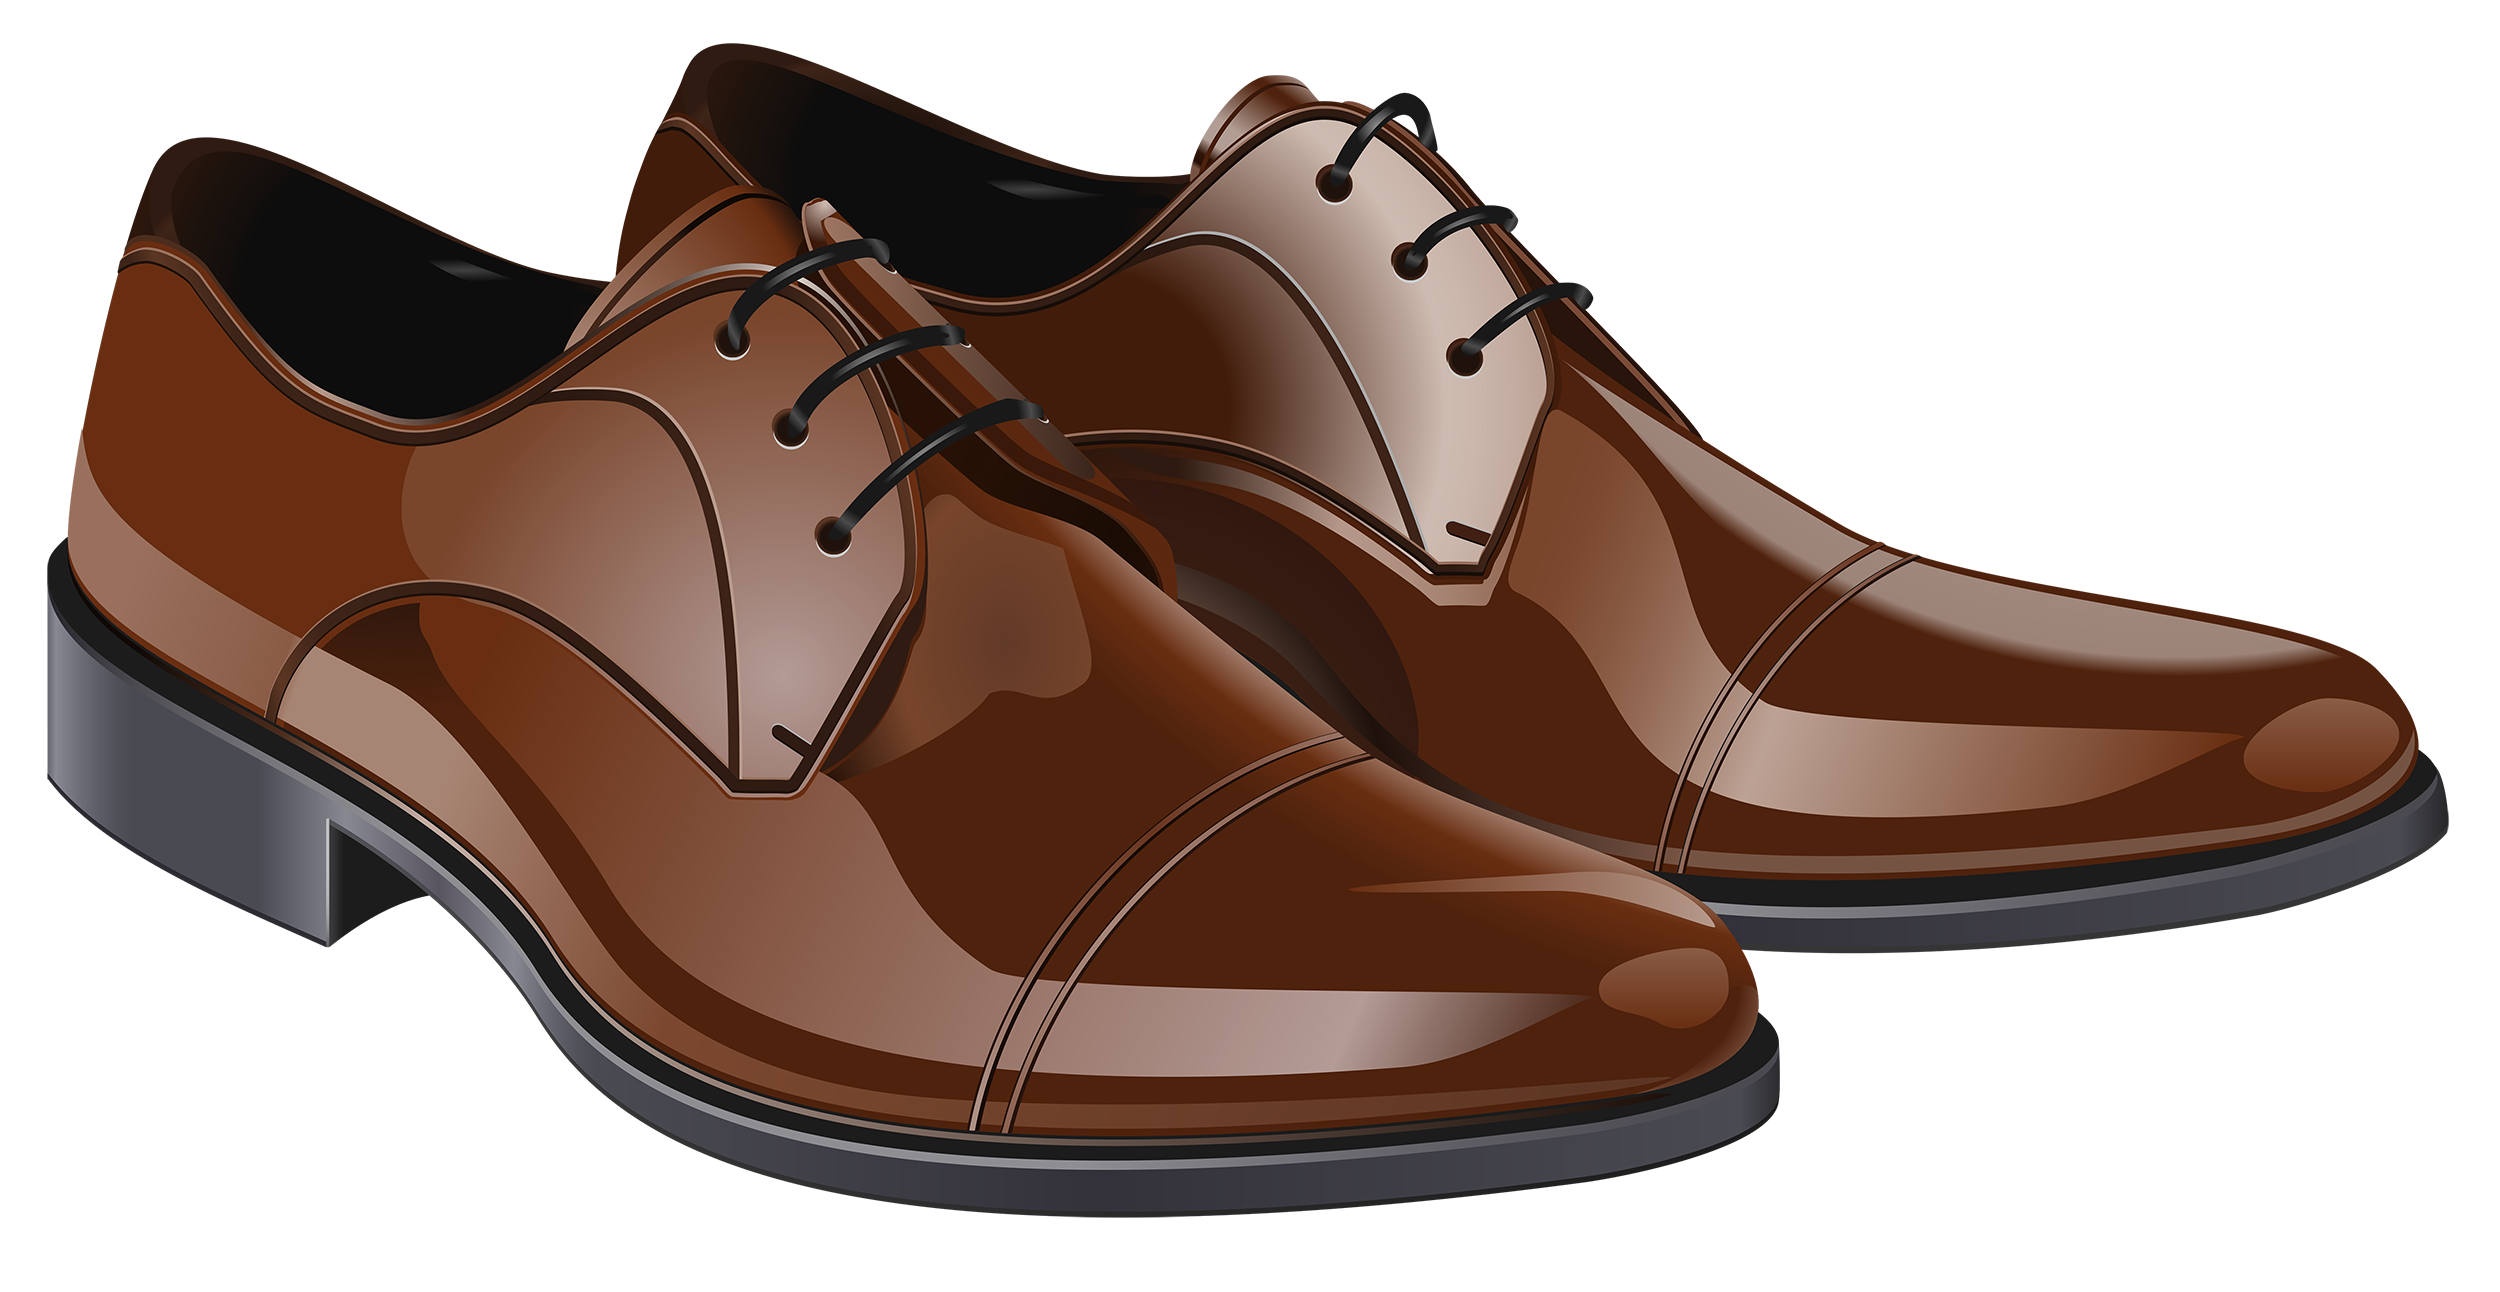 image Brown clipart. Men shoes png best